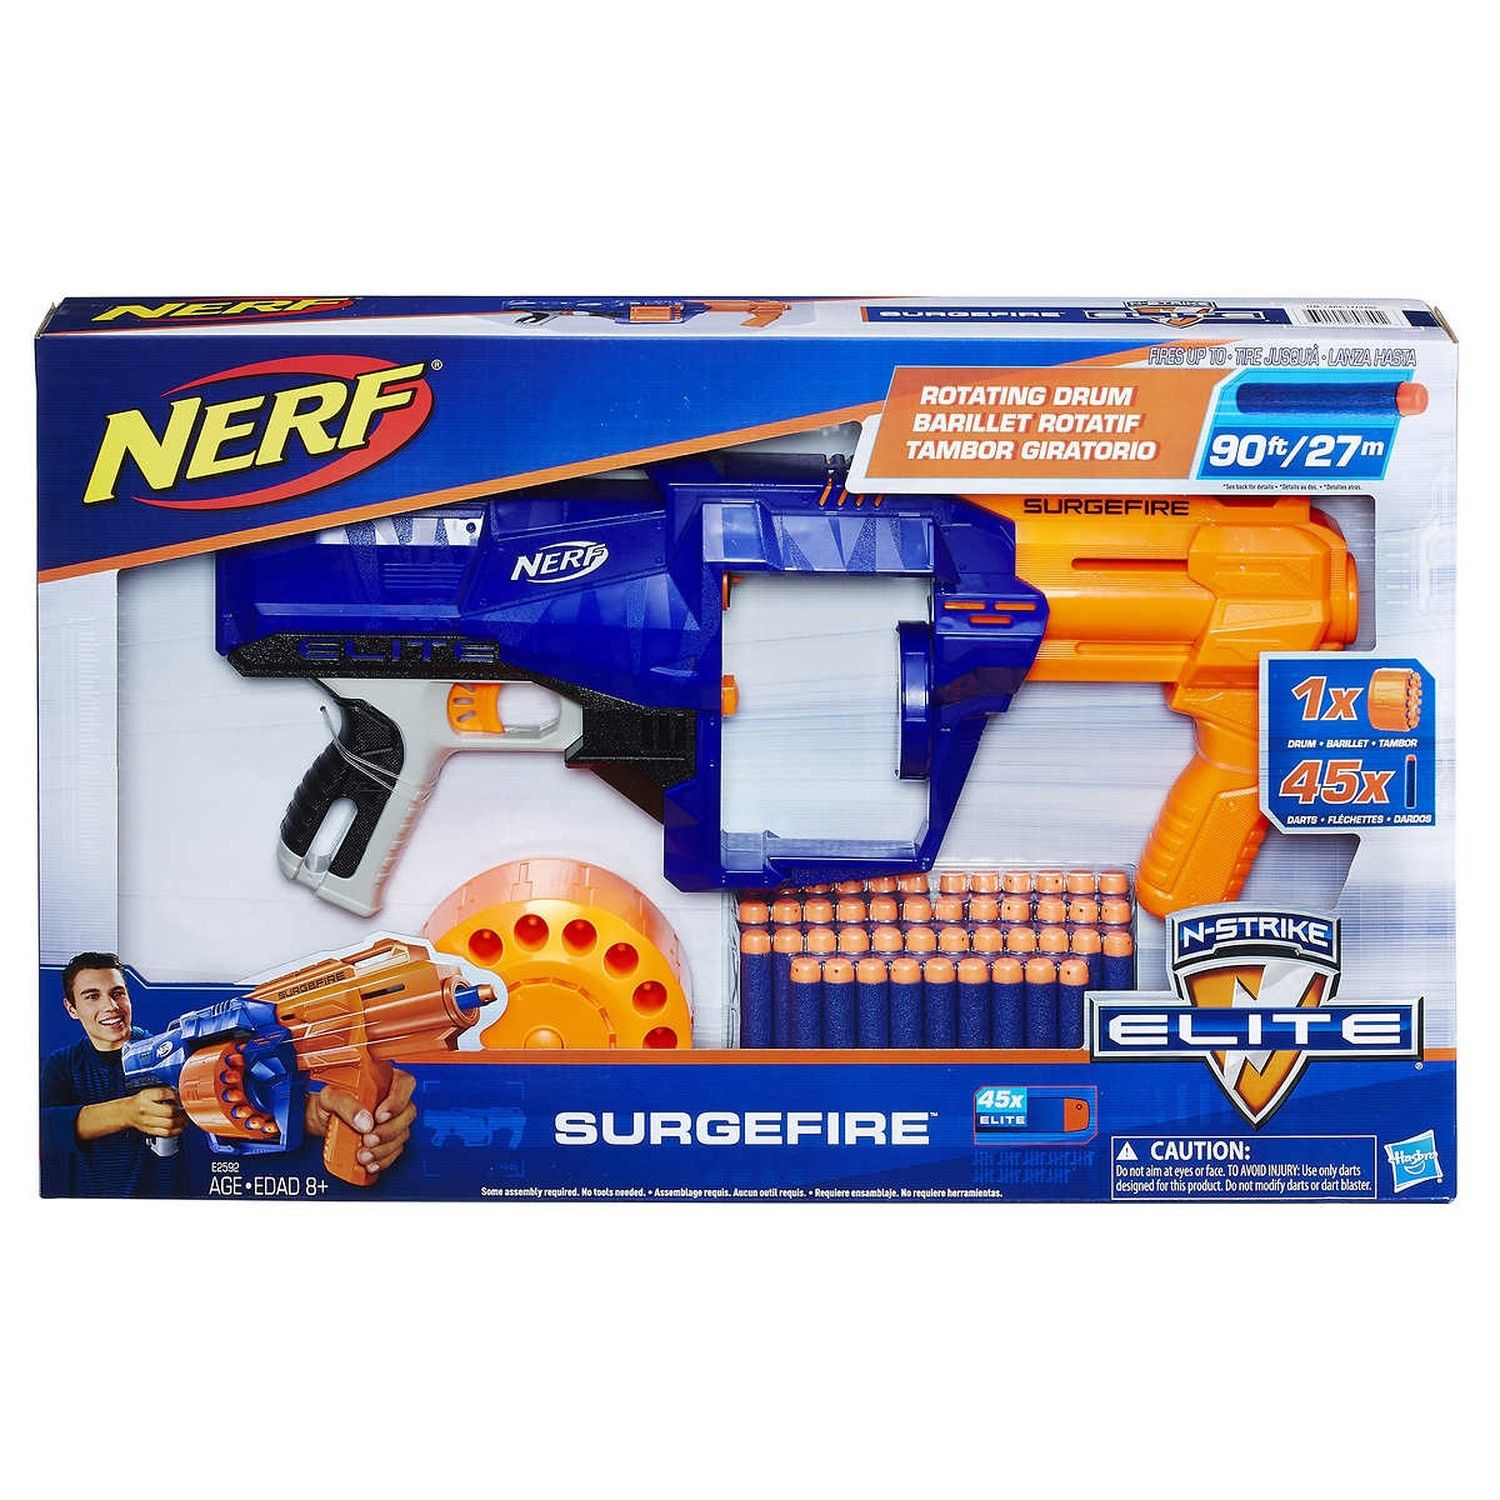 Nerf Surgefire Mega Pack Includes 45 Elite darts 15-dart rotating drum